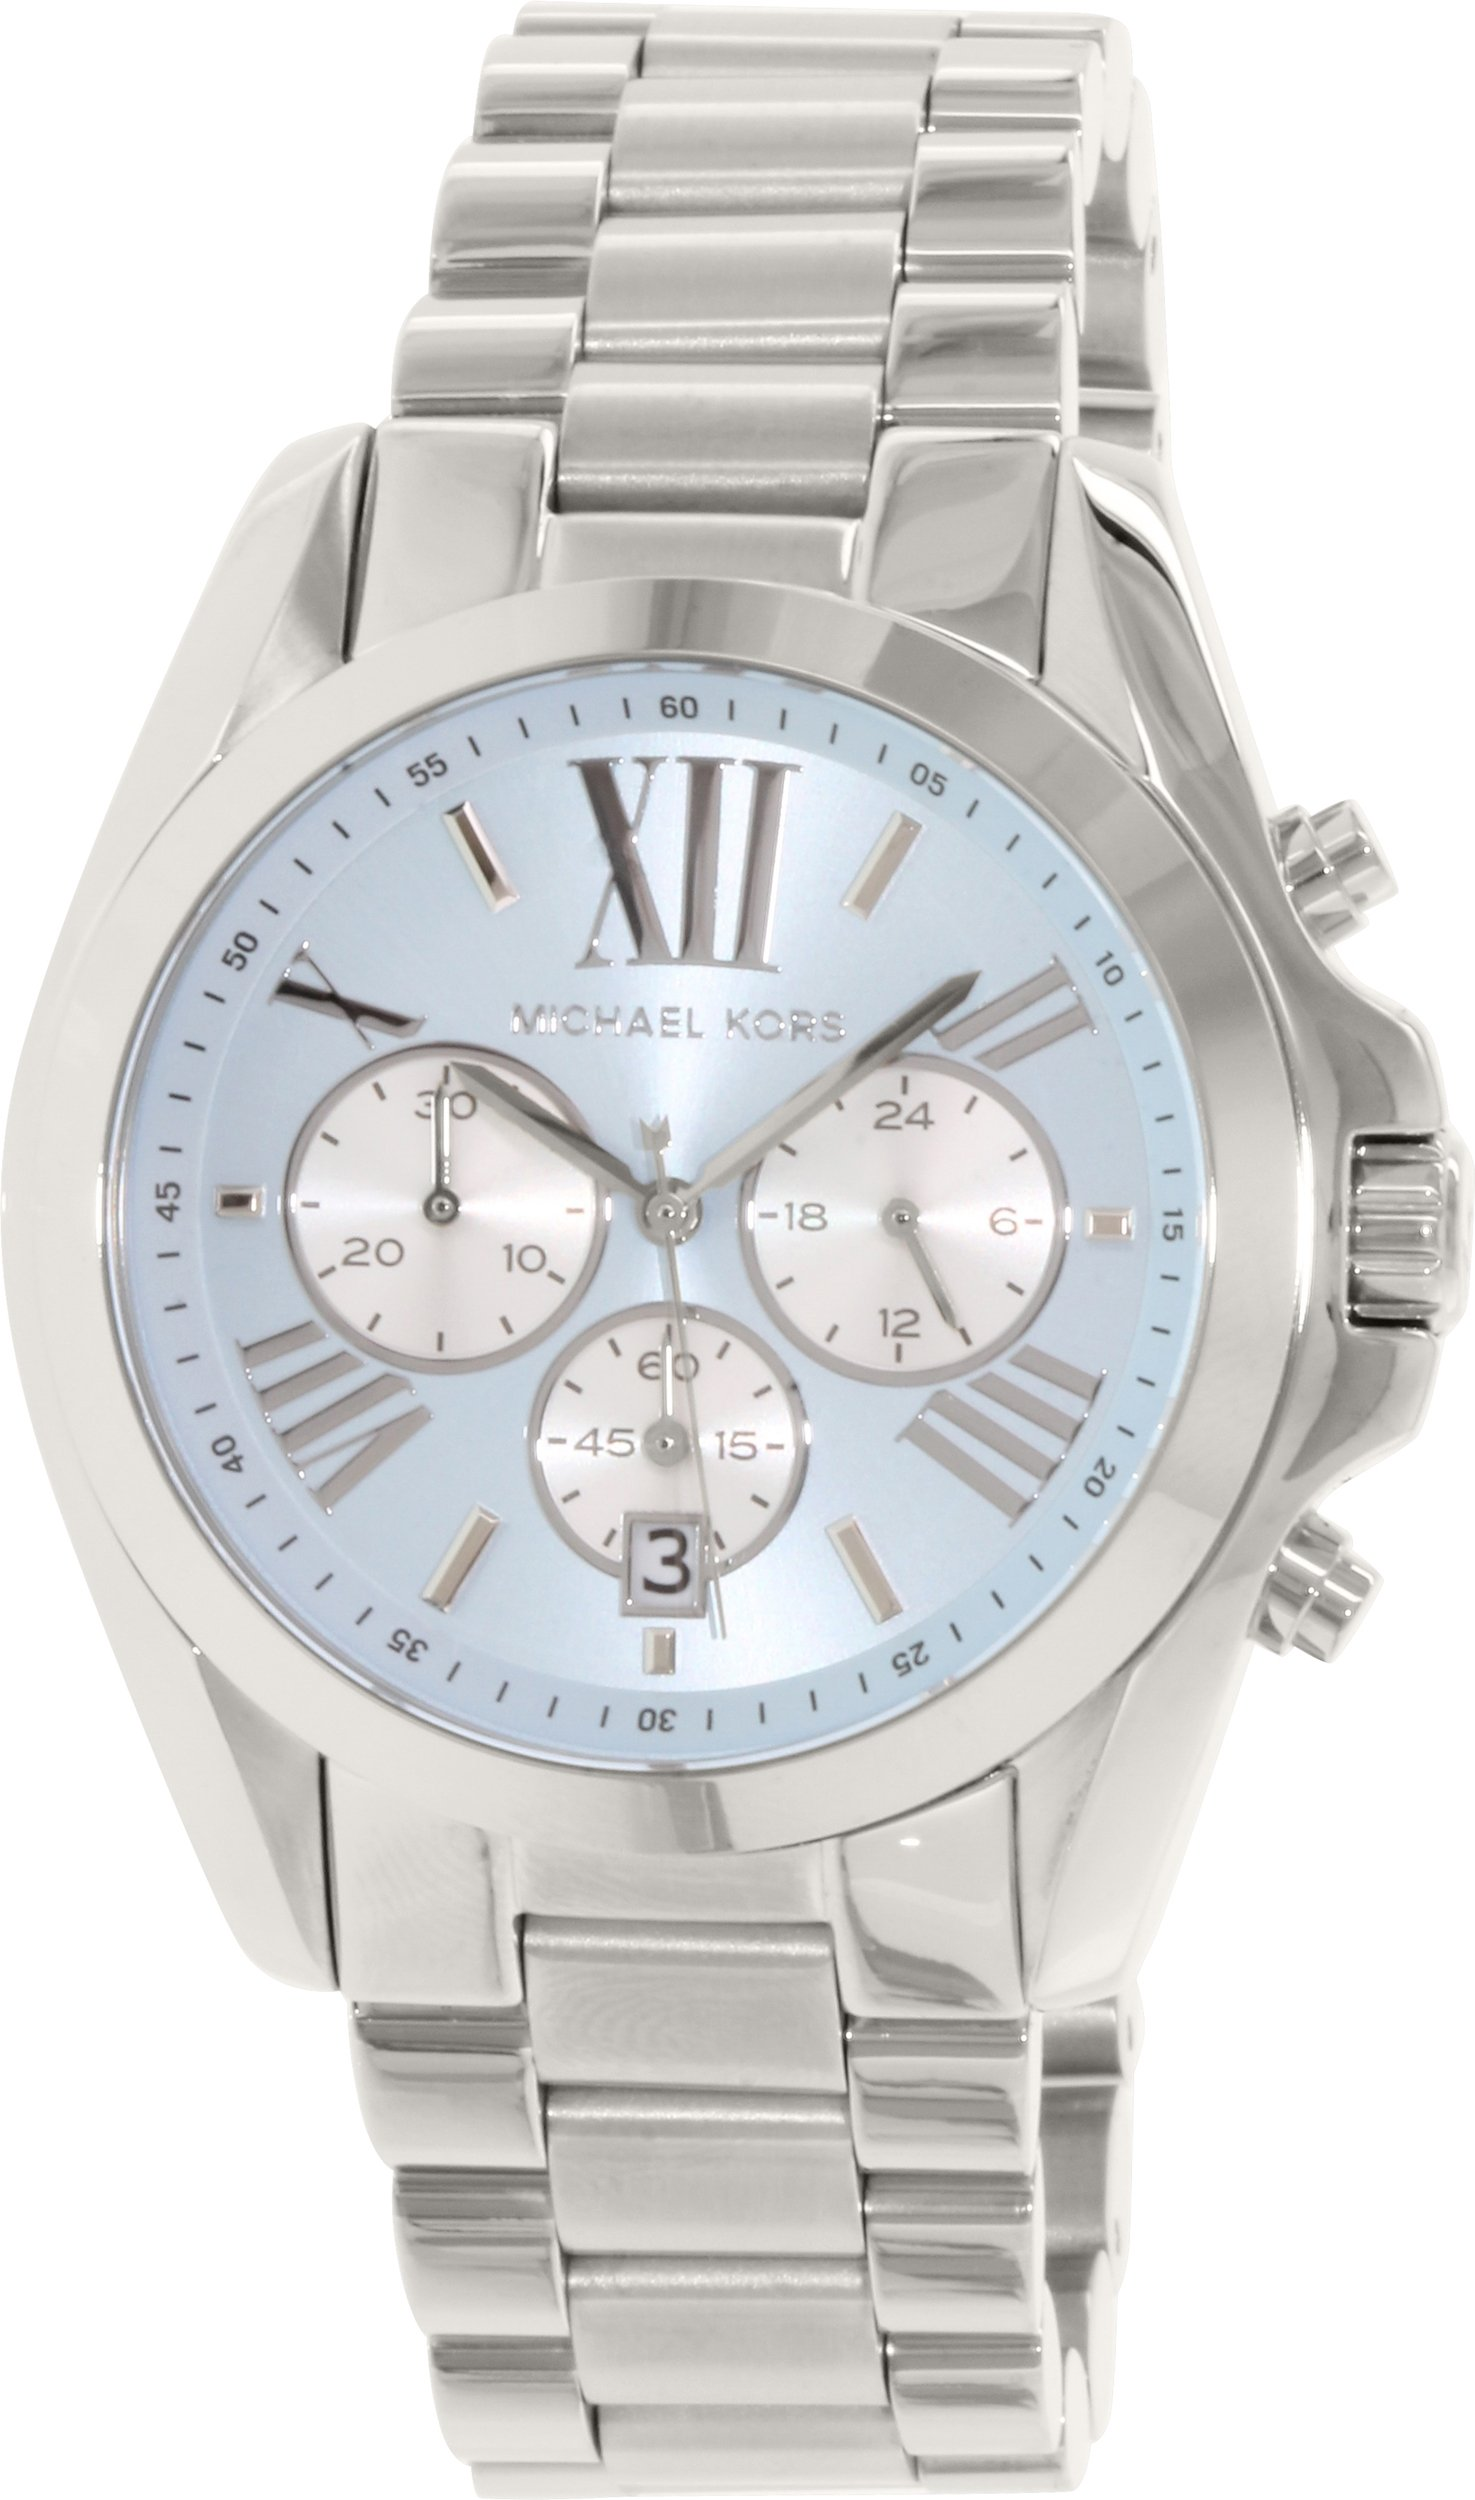 Michael Kors Bradshaw Blue Dial SS Chronograph Quartz Ladies Watch MK6099